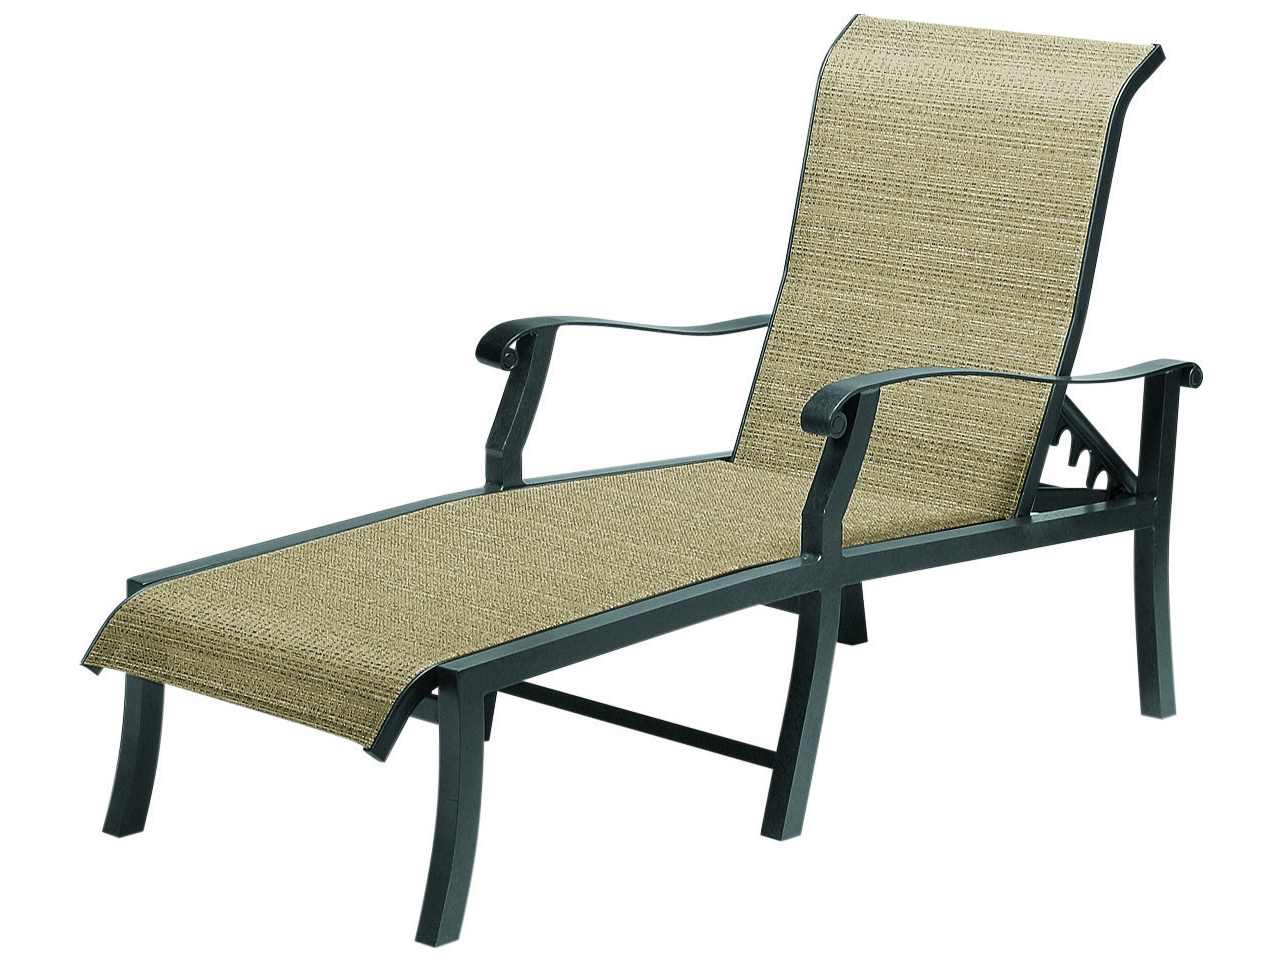 Woodard Cortland Sling Aluminum Chaise Lounge With Favorite Myers Outdoor Aluminum Mesh Chaise Lounges (View 24 of 25)